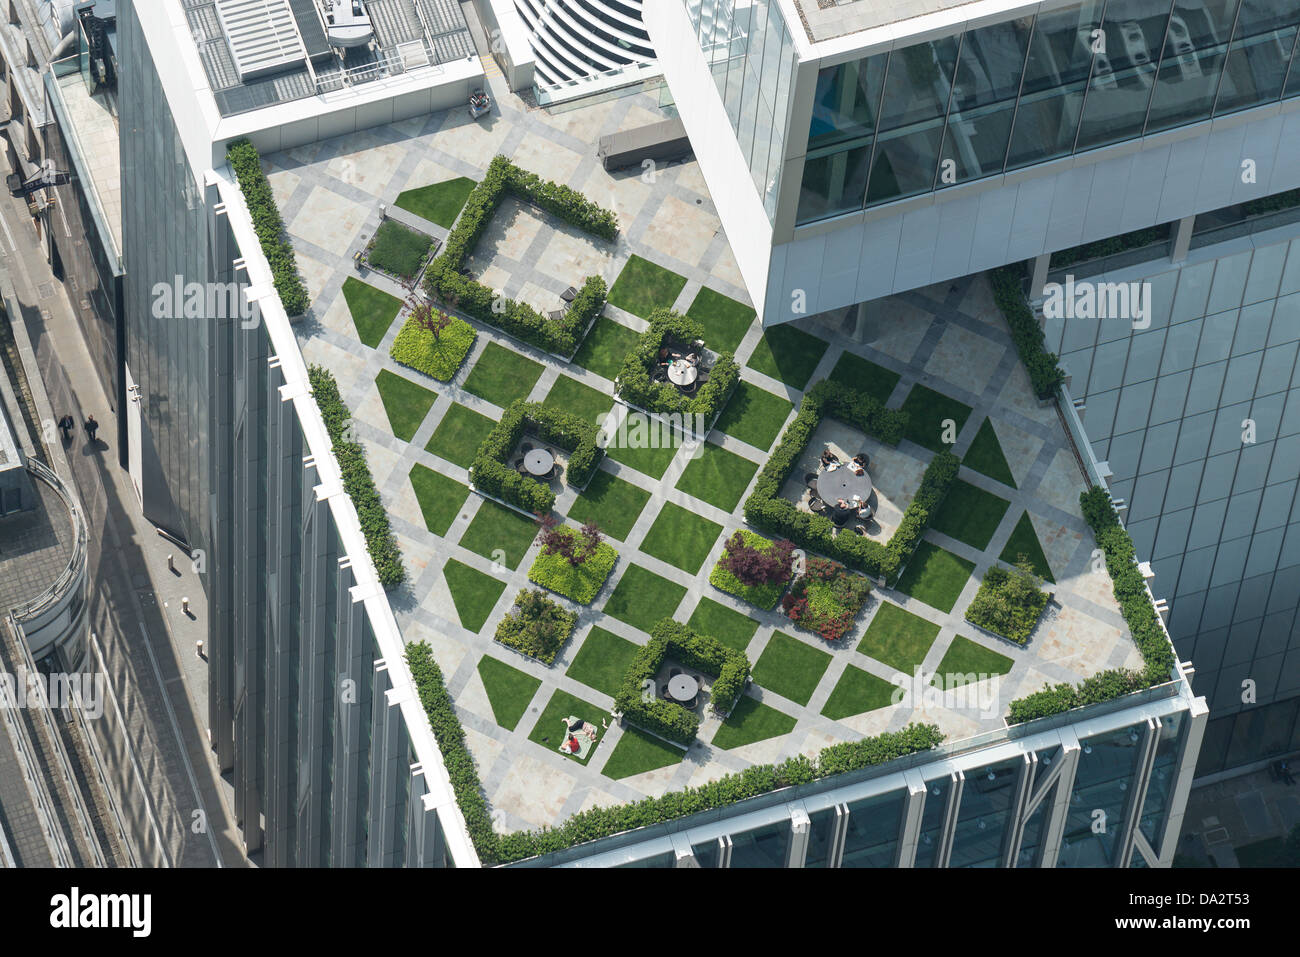 Aerial photograph of a rooftop garden in London - Stock Image